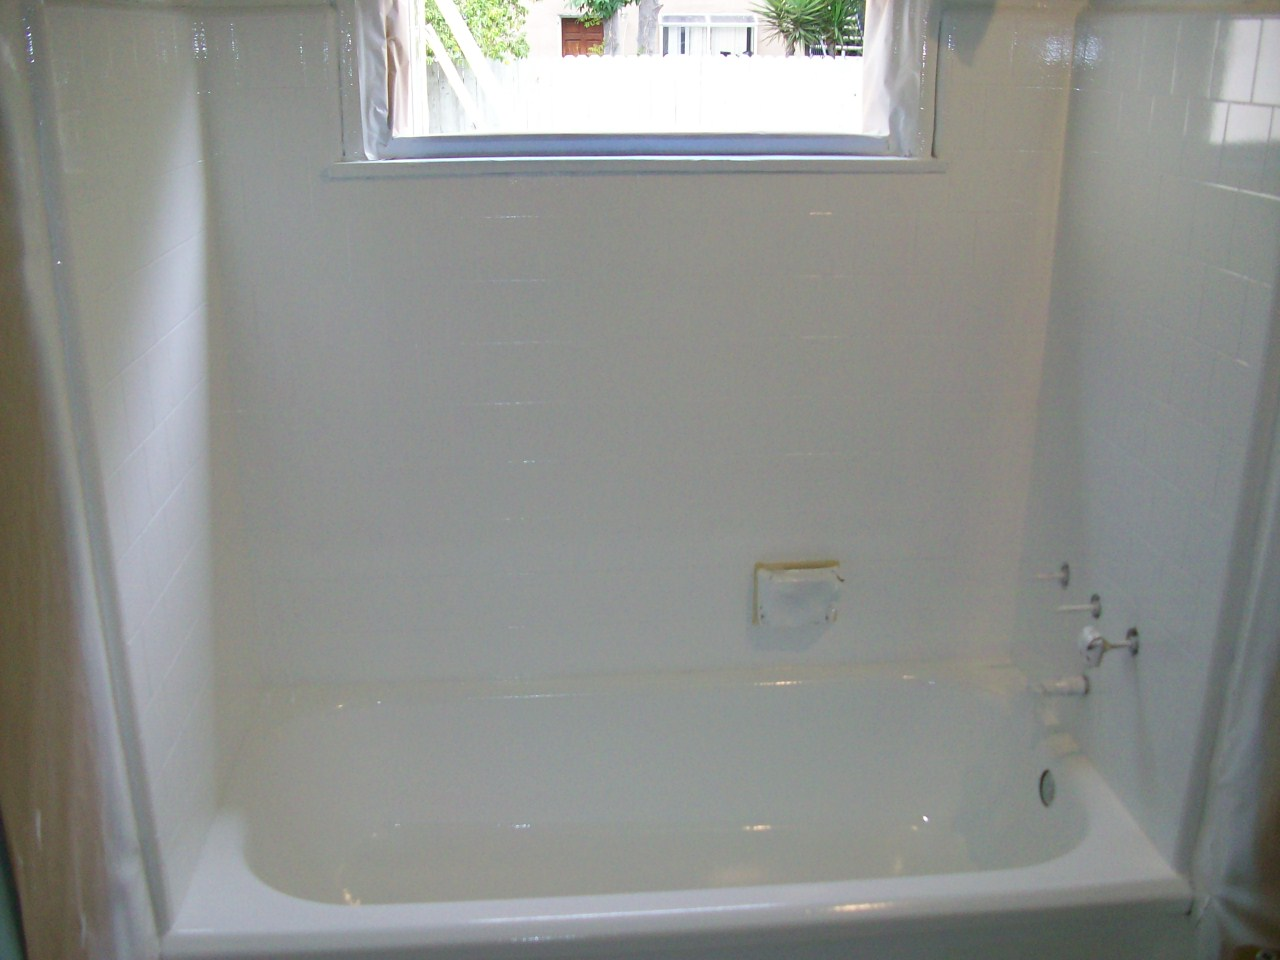 acrylic reglazing and paint bathtub resurfacing refinish tub companies fiberglass refinishing tile porcelain sink iron cast